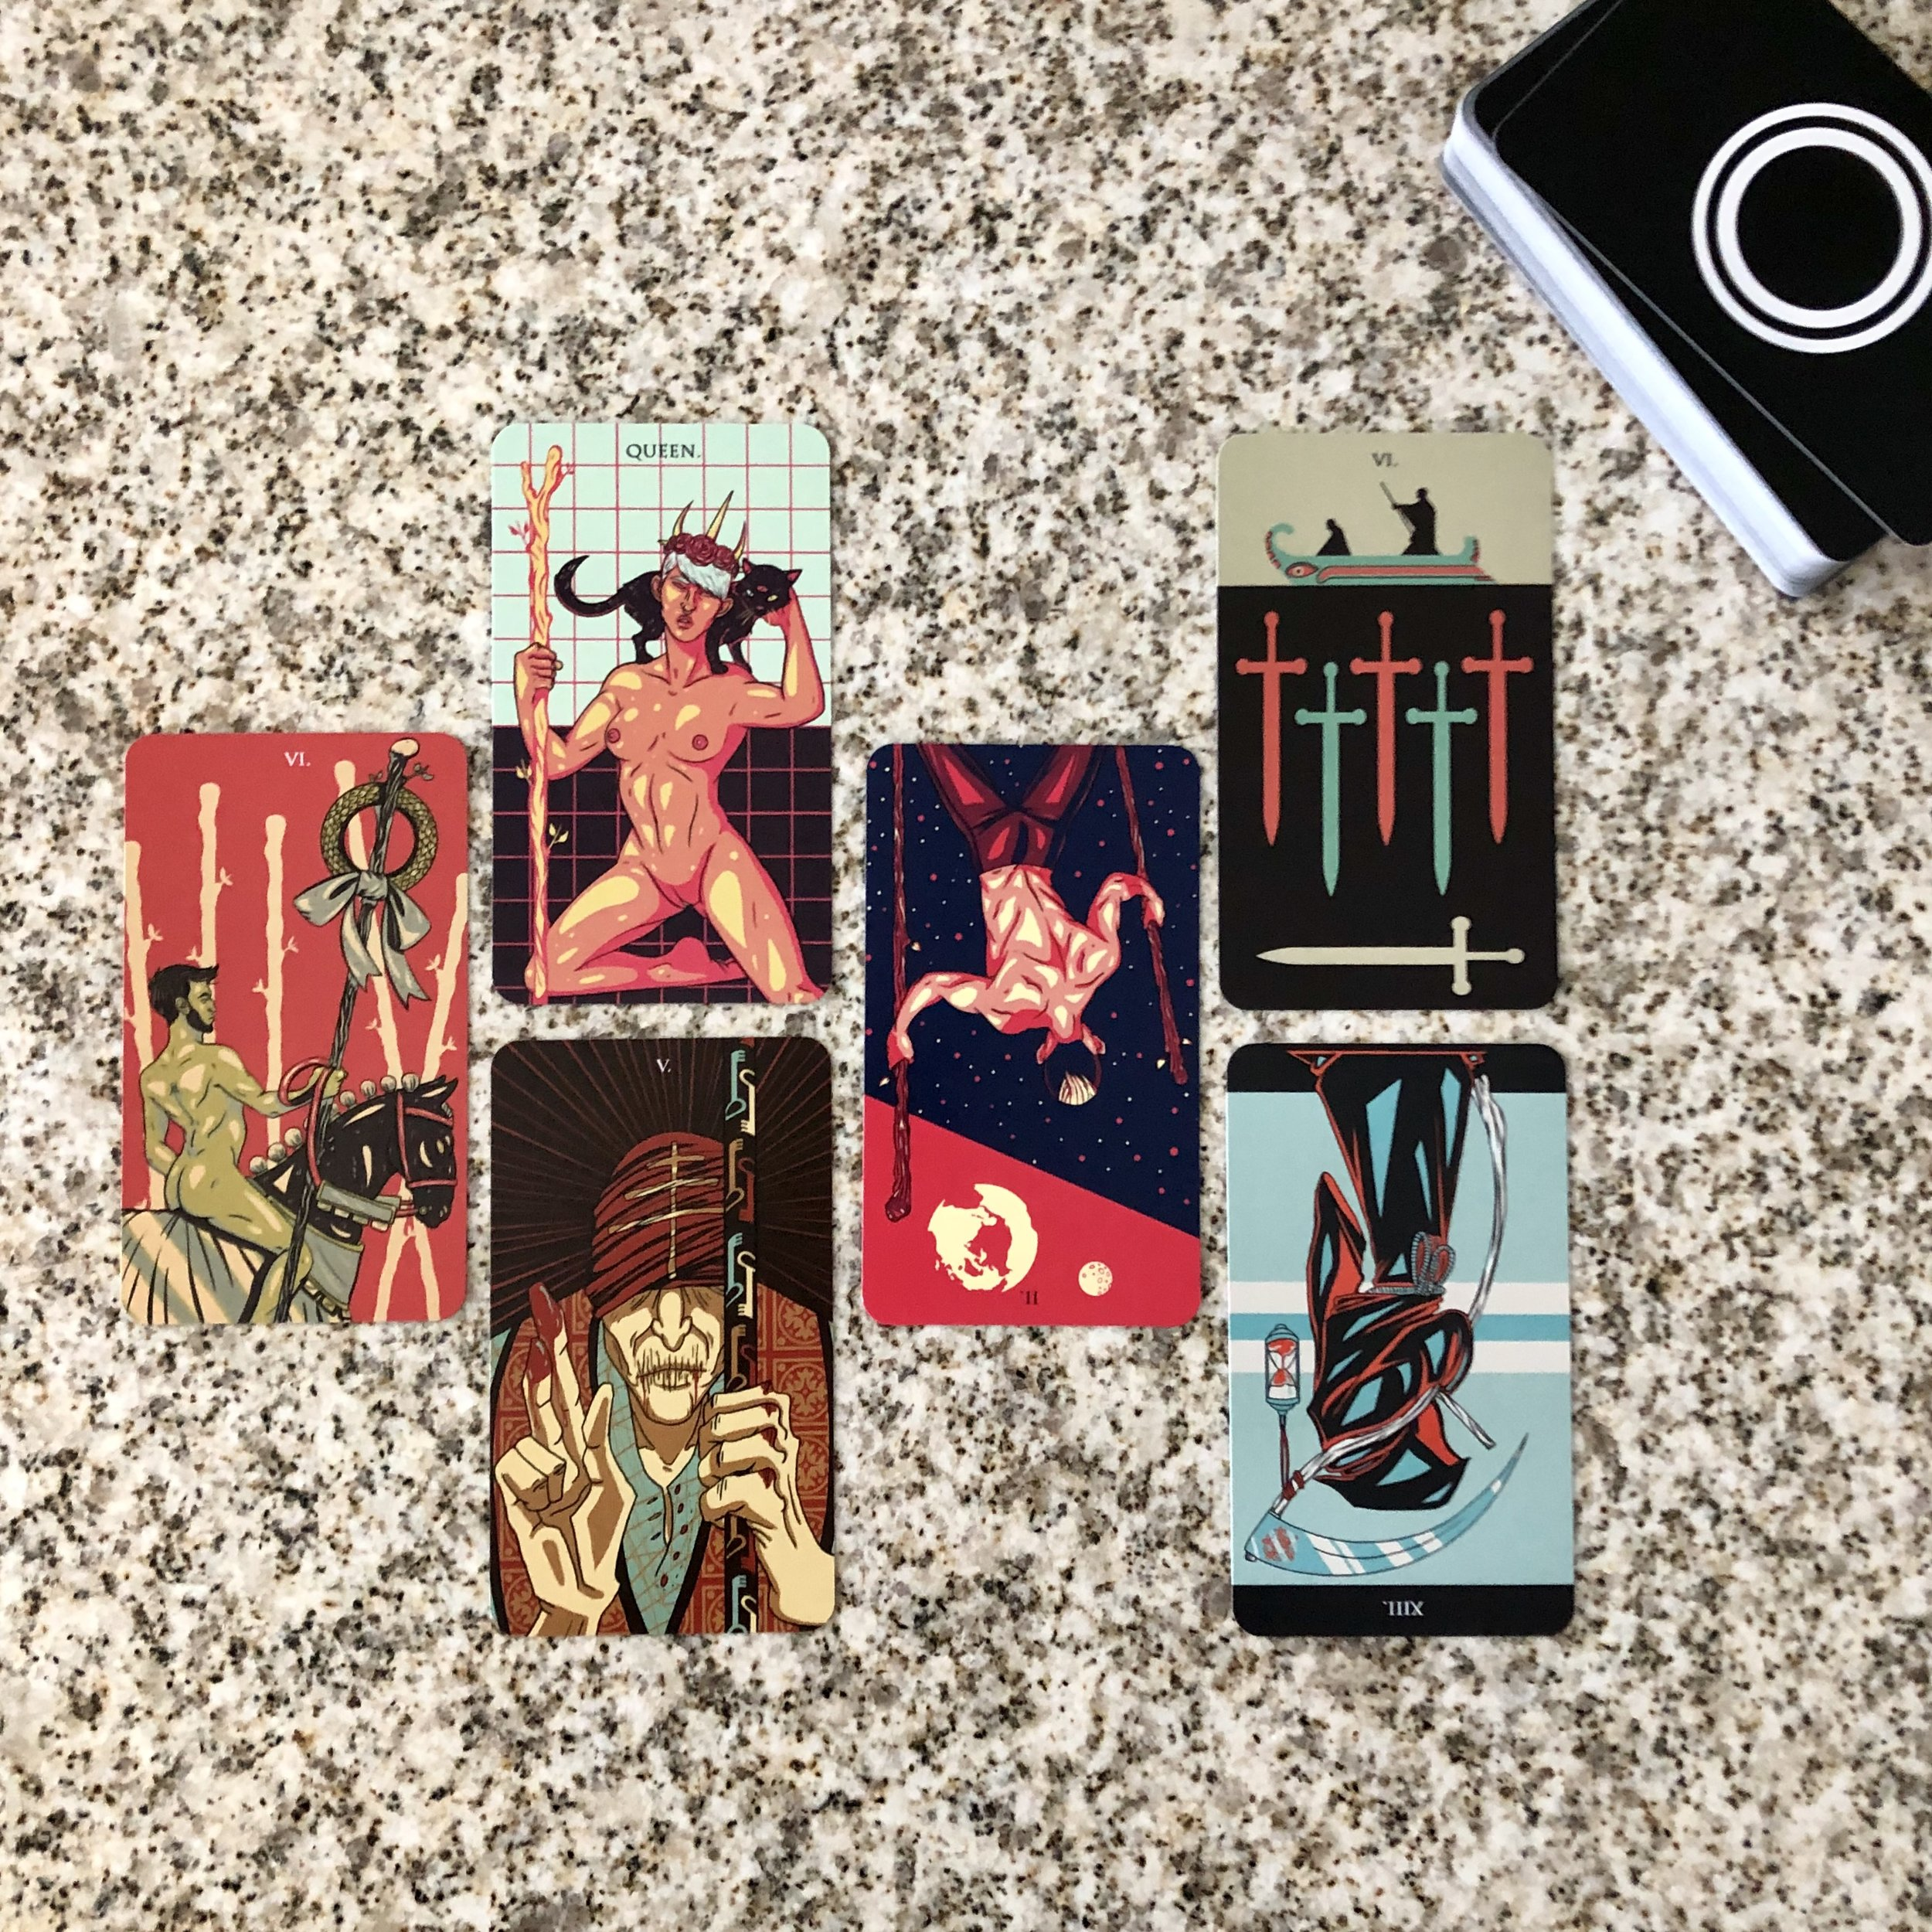 INTERVIEWING THE PRISMATIC TAROT - Tell me about yourself. 6 of Wands.What are your strengths? Queen of Wands.And your limitations? The Hierophant.What are you here to teach me? 2 of Wands (reversed).How can I work with you most effectively? 6 of Swords.Where is our partnership headed? Death (reversed).